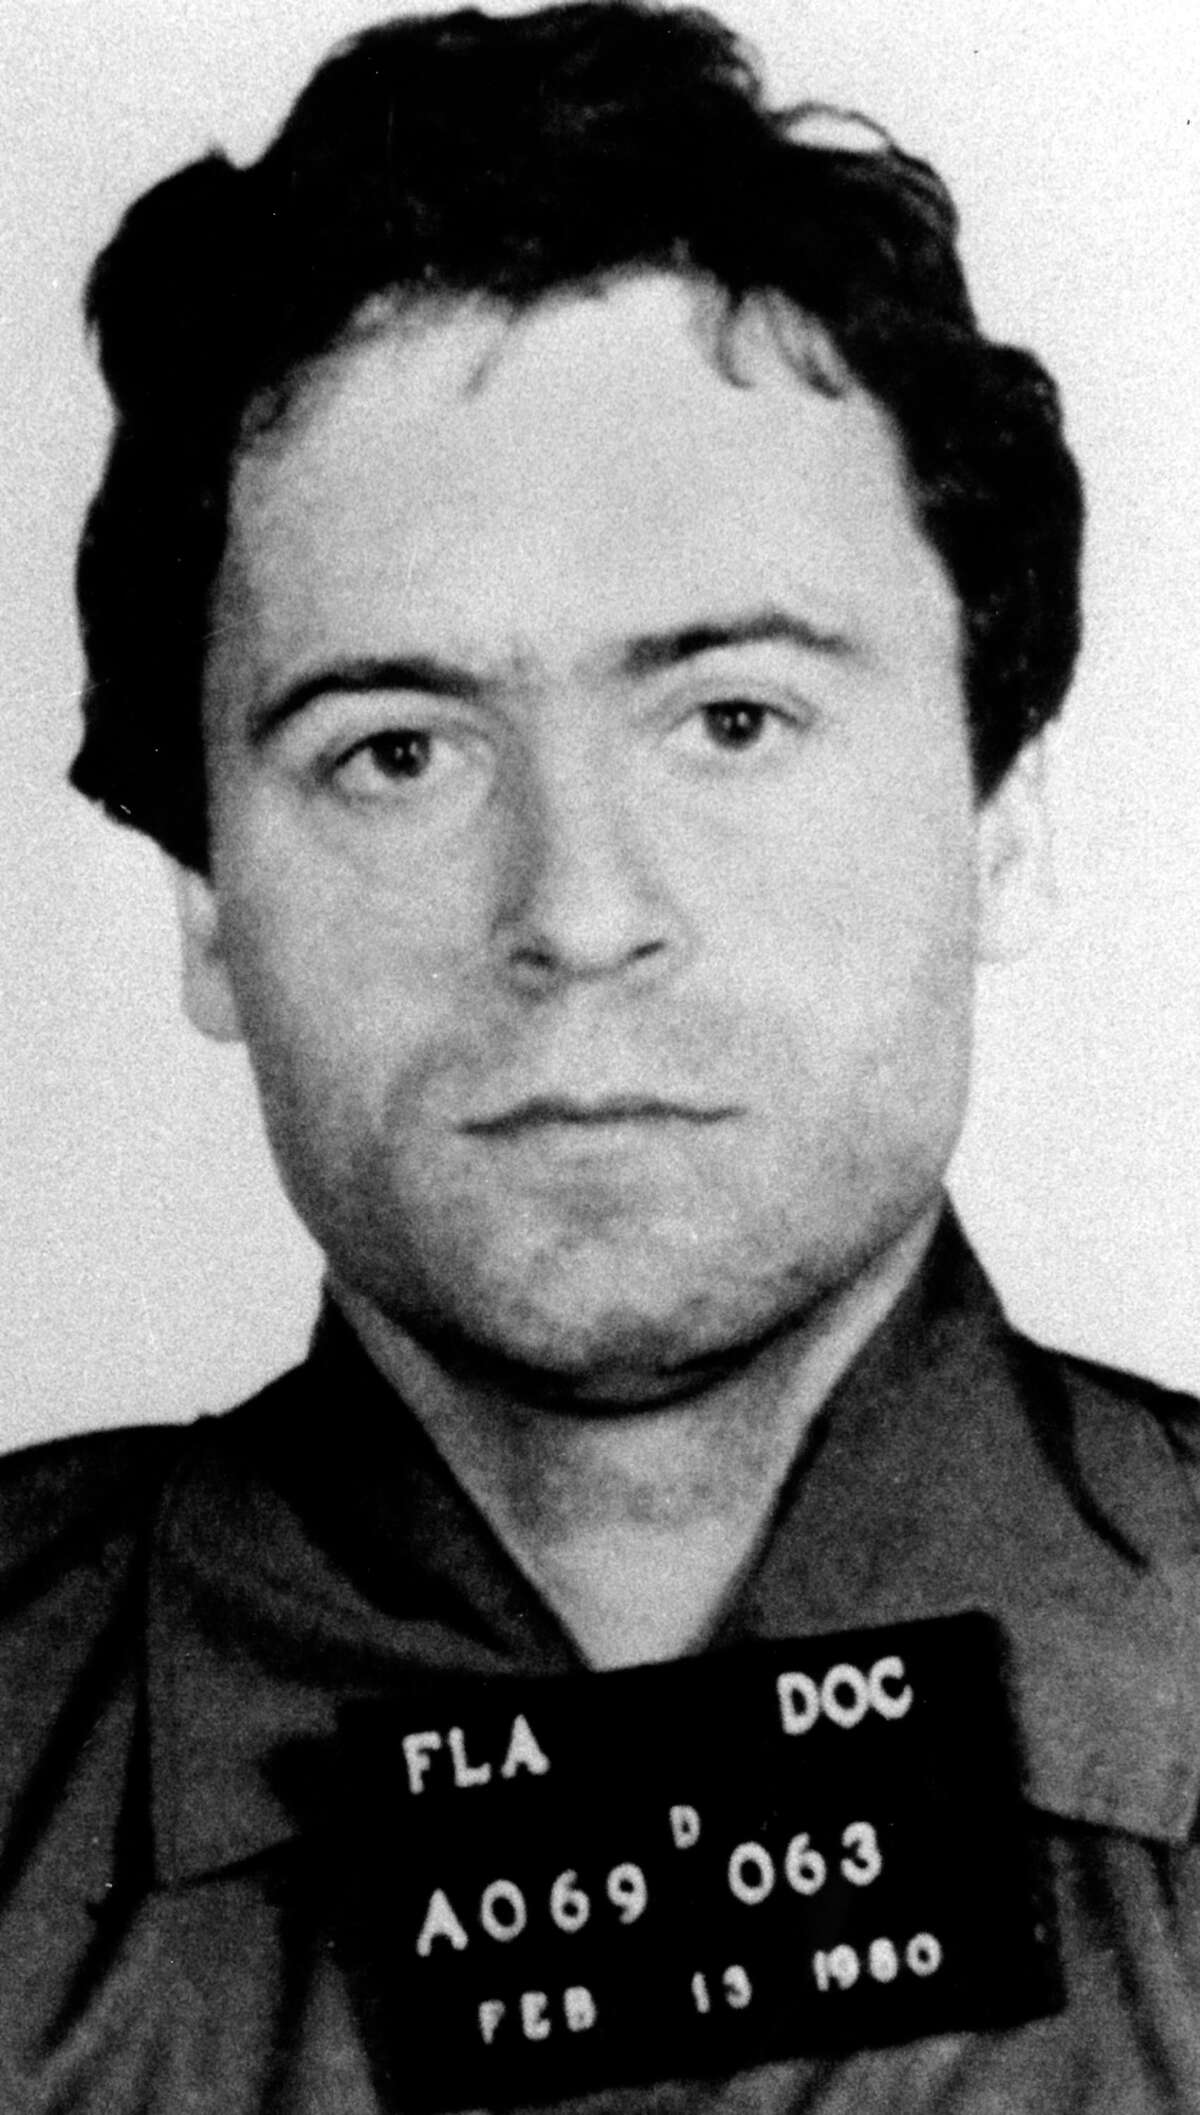 A February 1980 police mug shot of serial killer Ted Bundy, who left a trail of victims from Washington state and Colorado to Florida, where he was finally convicted and executed. (AP Photo)